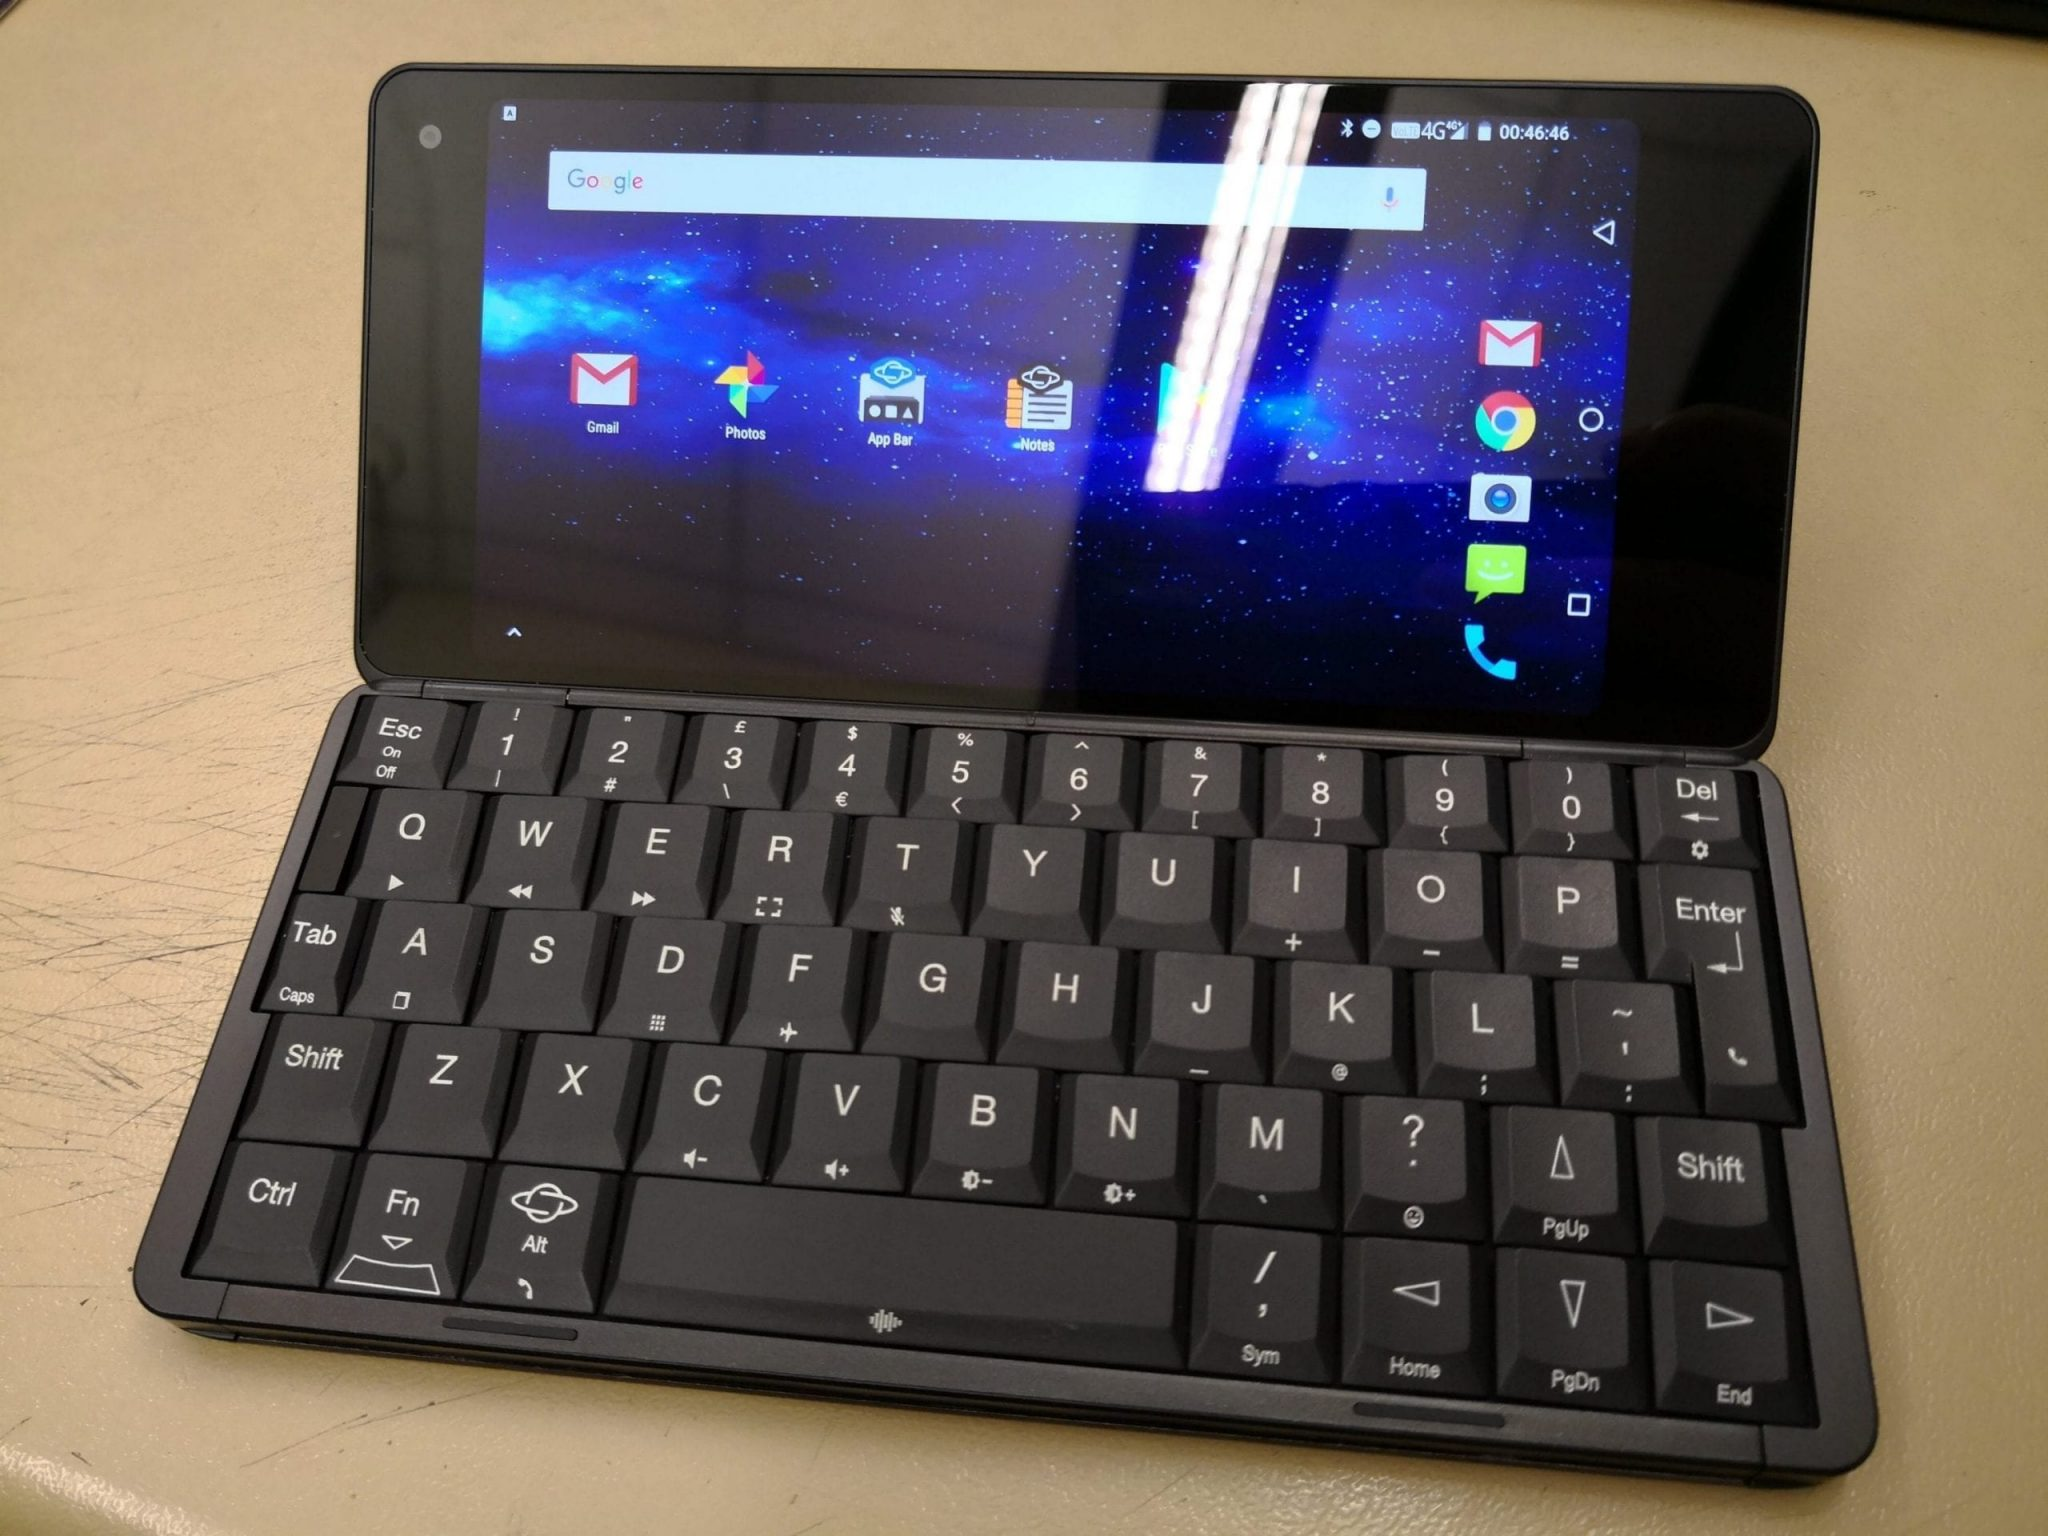 Gemini PDA Review: Everything I hoped for from a modern-day